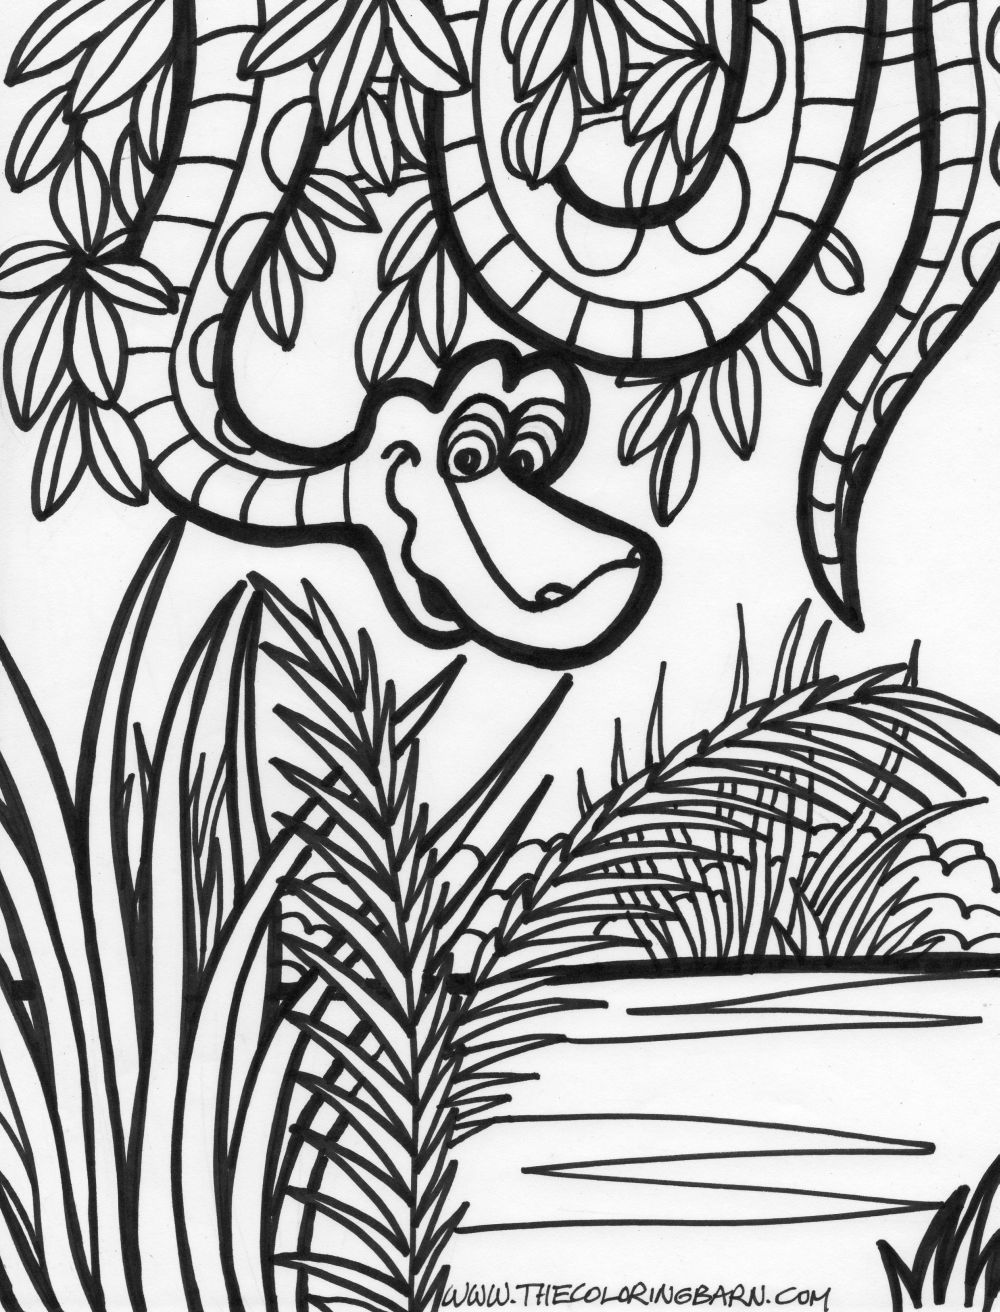 1000x1312 Drawn Rainforest Jungle Scenery